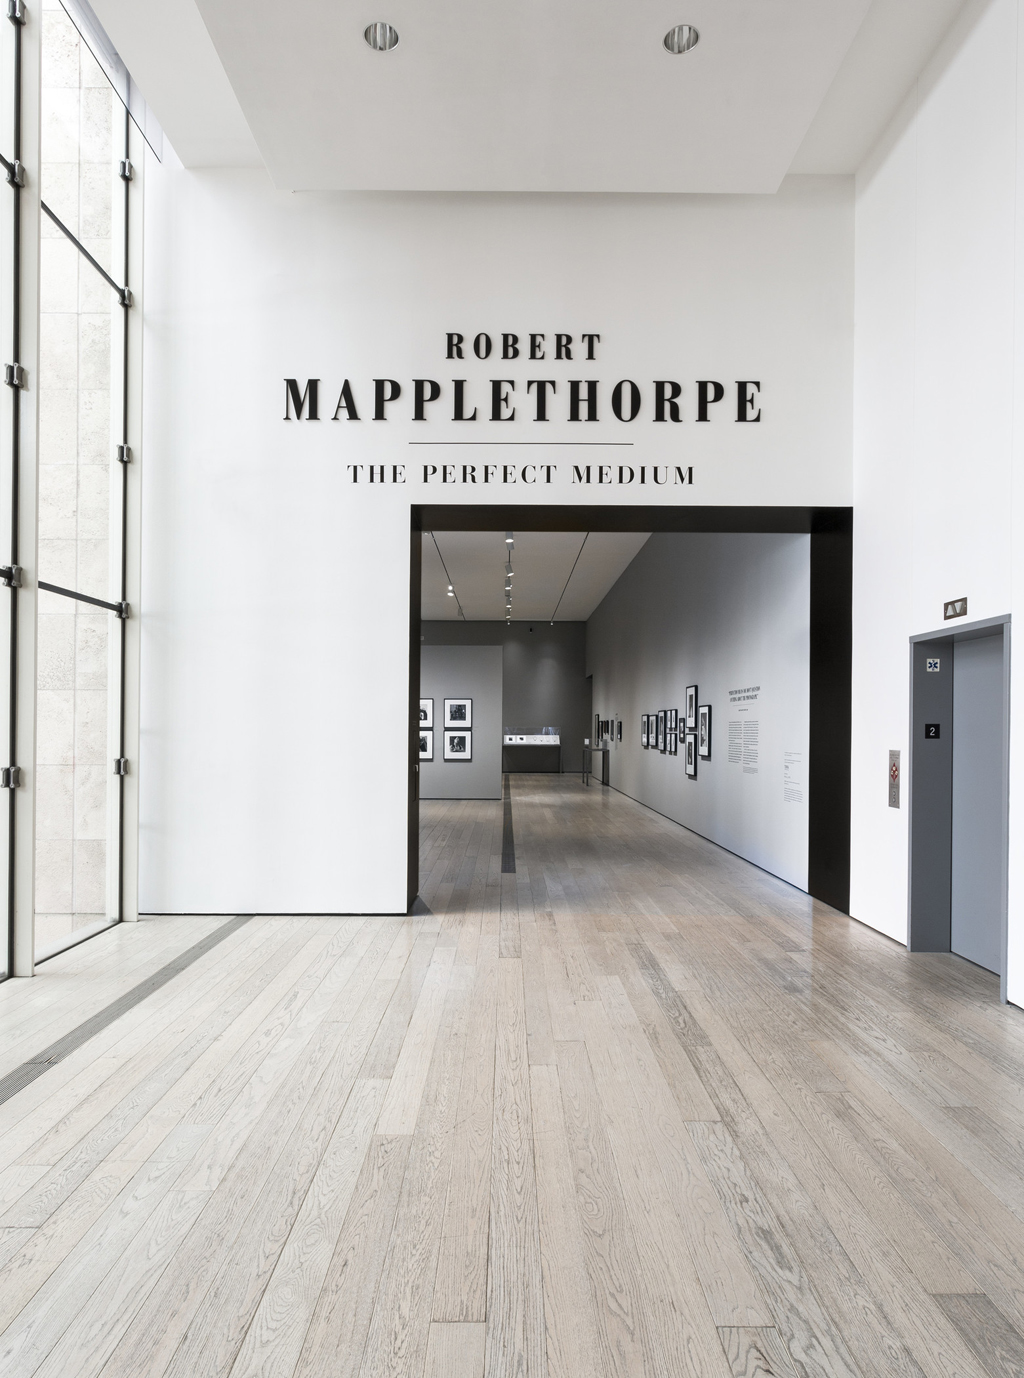 Title wall for Robert Mapplethorpe: The Perfect Medium, LACMA, 2016, photo © Museum Associates/LACMA